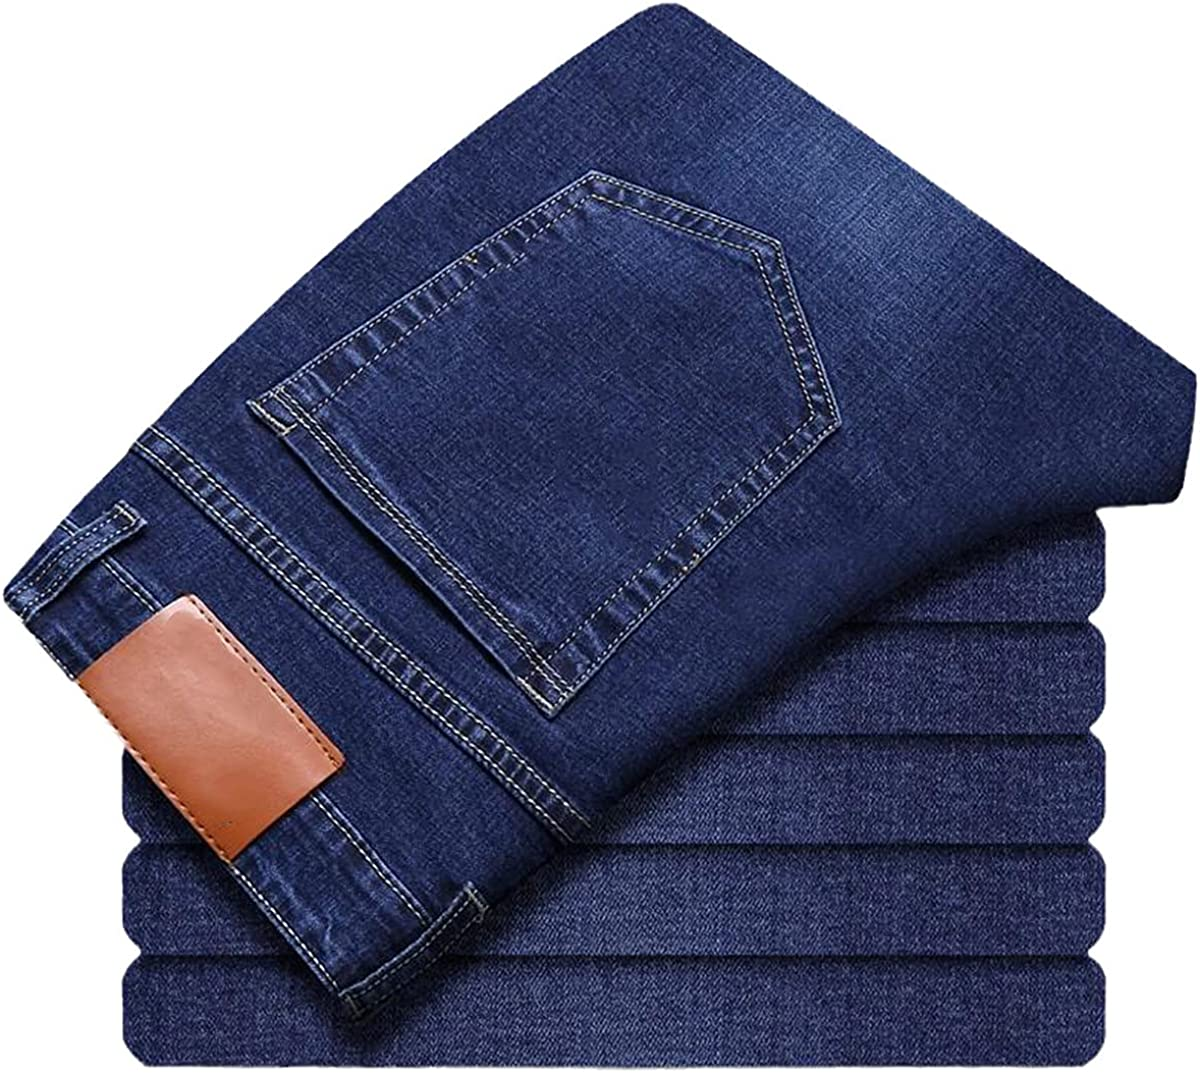 CACLSL Spring and Summer Men's Stretch Straight Jeans Style Trousers Men's